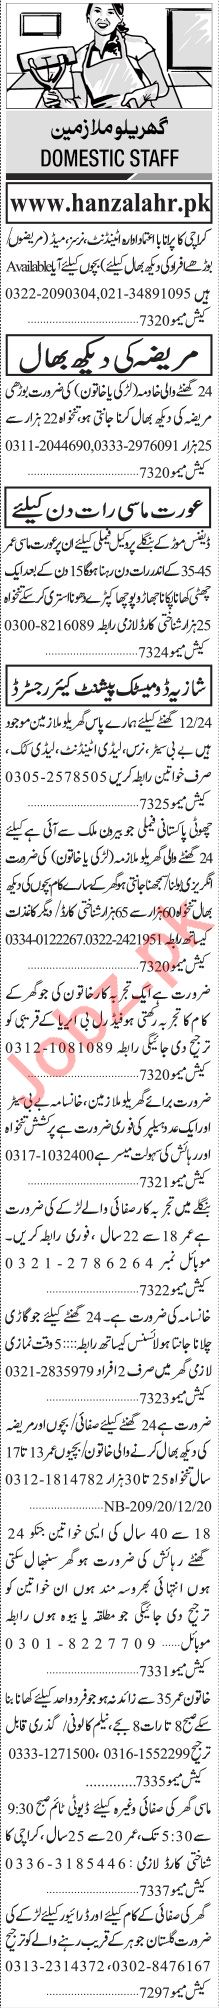 Jang Sunday Classified Ads 20 Dec 2020 for House Staff